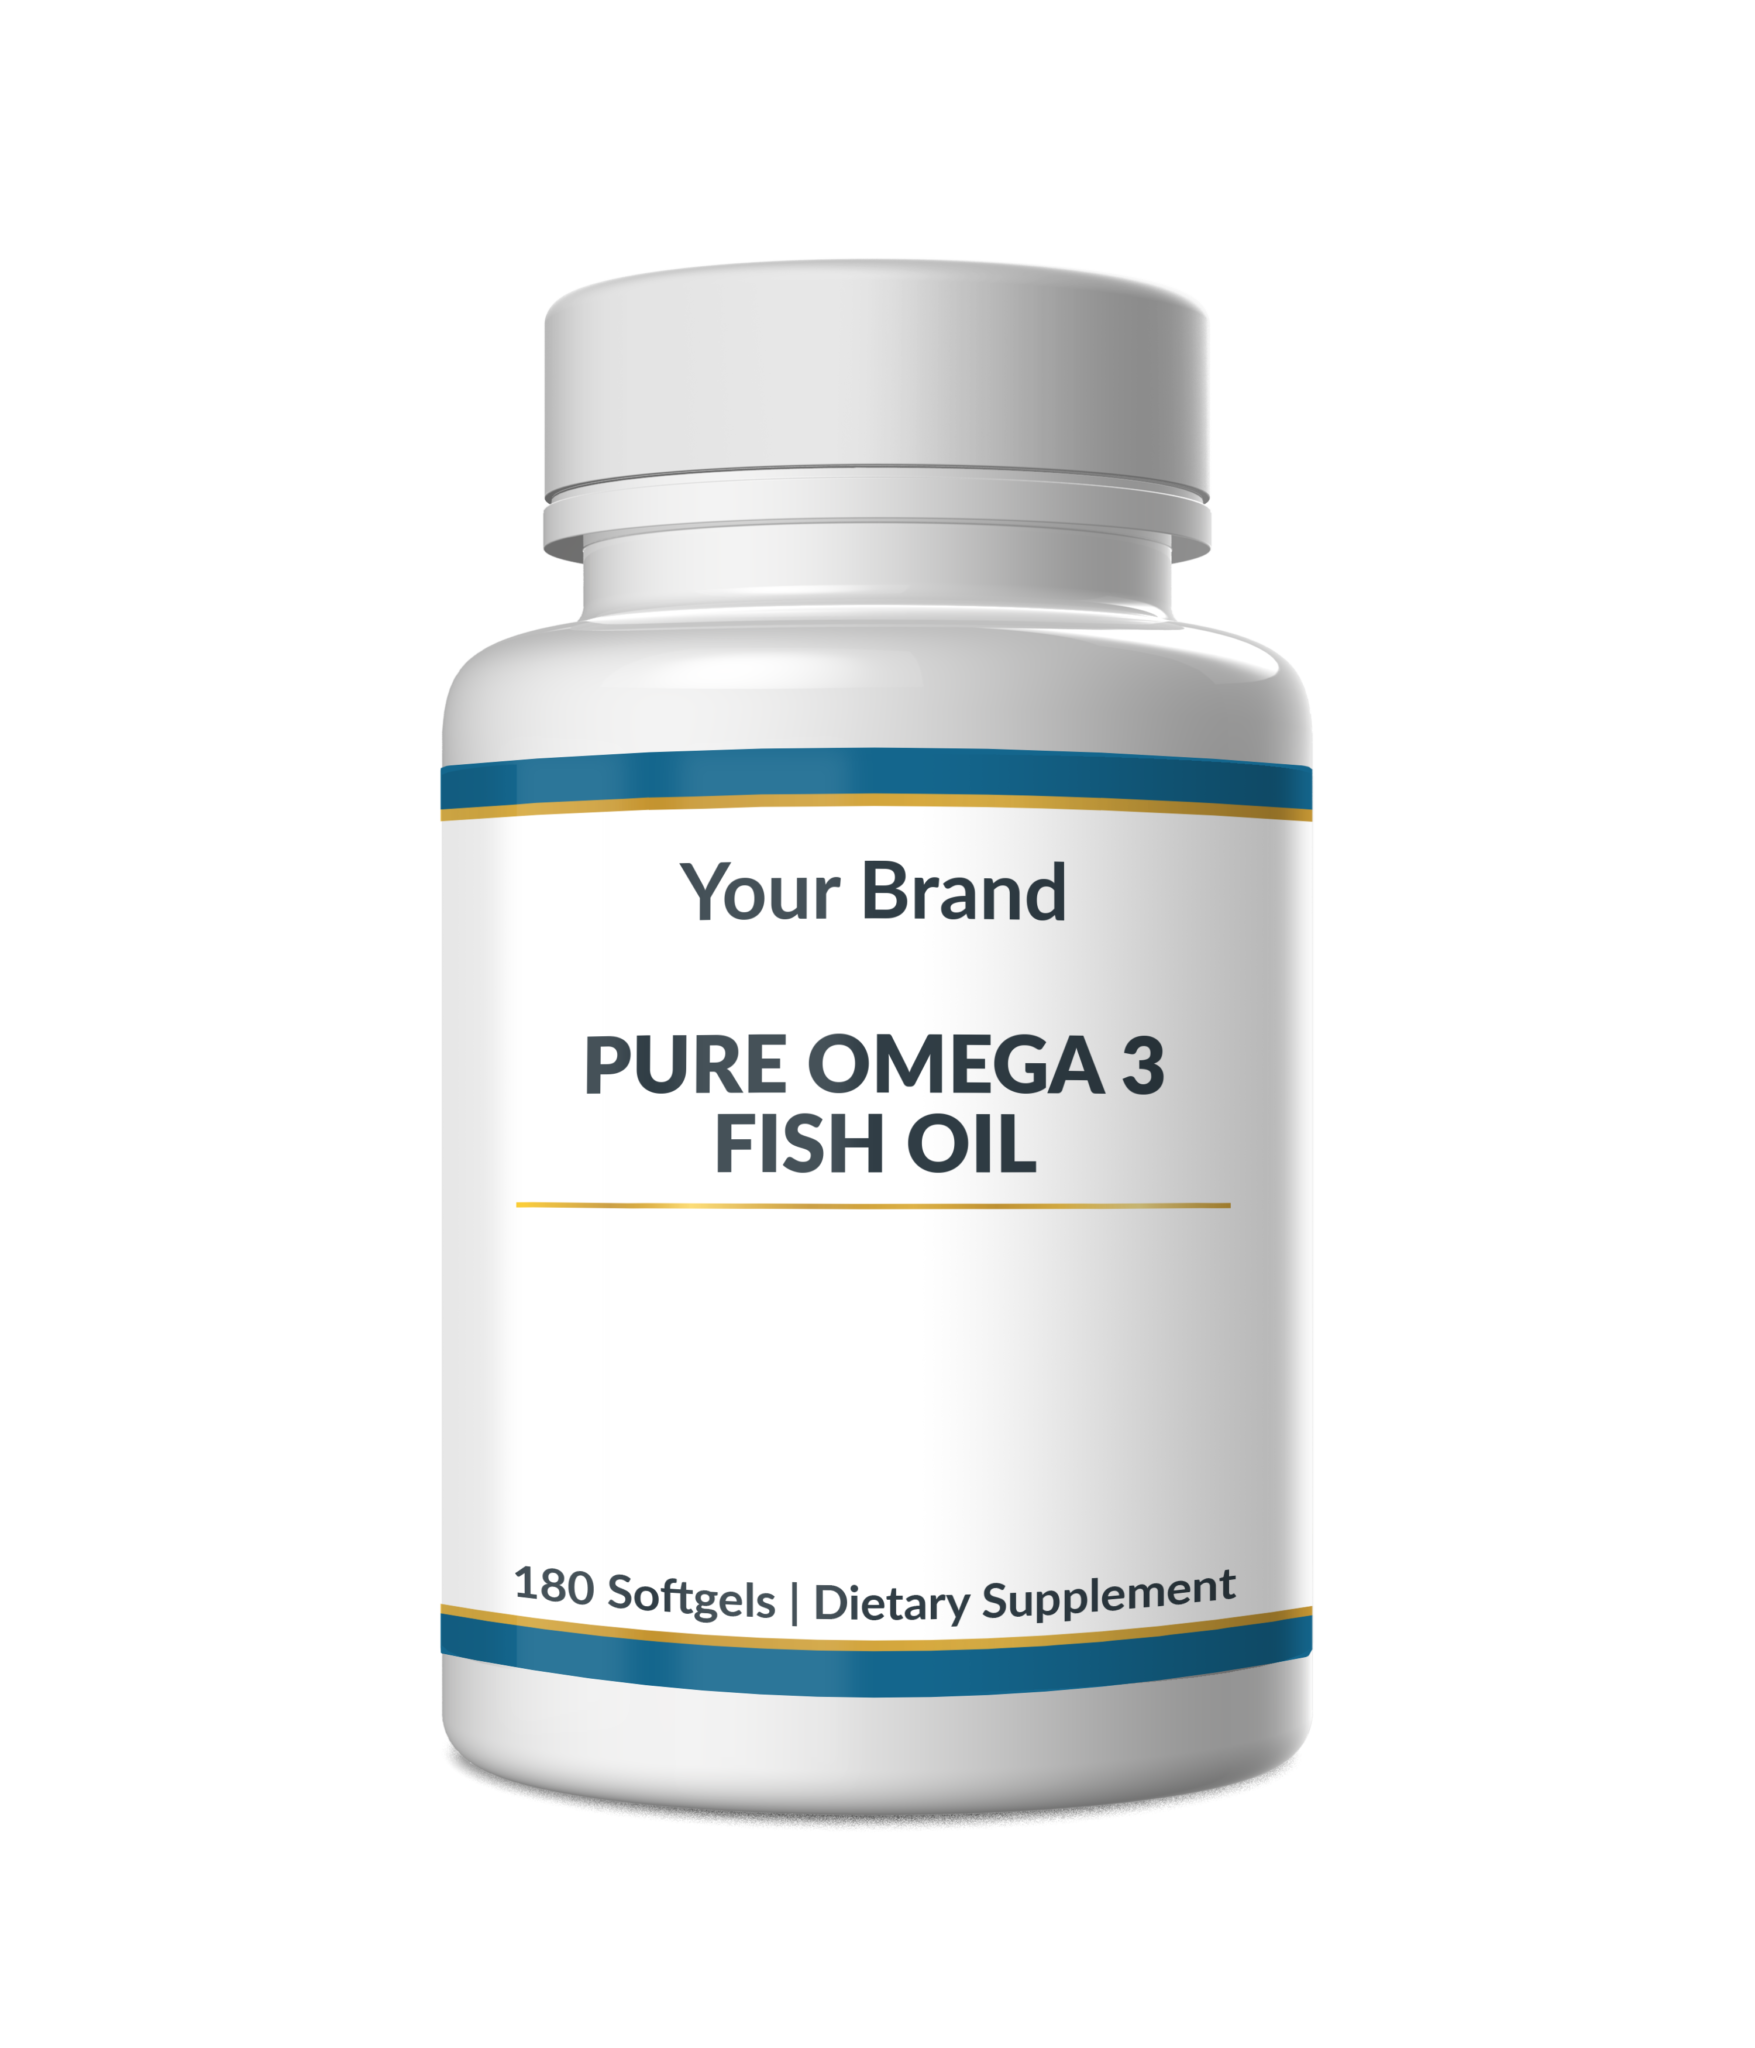 Pure omega 3 fish oil the lab genie for Fish oil benefits for women